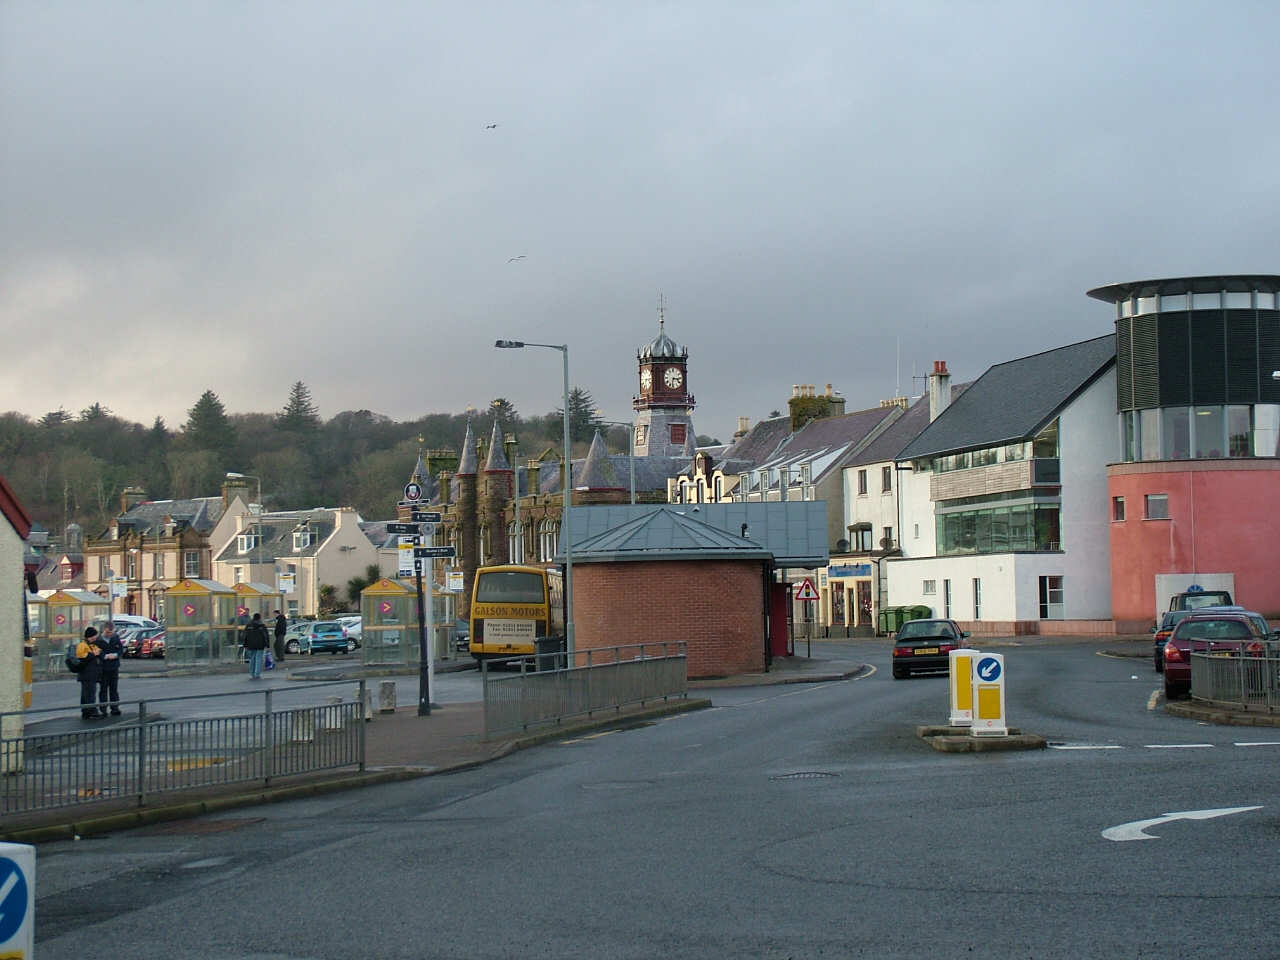 South Beach, Stornoway - An Lanntair far right